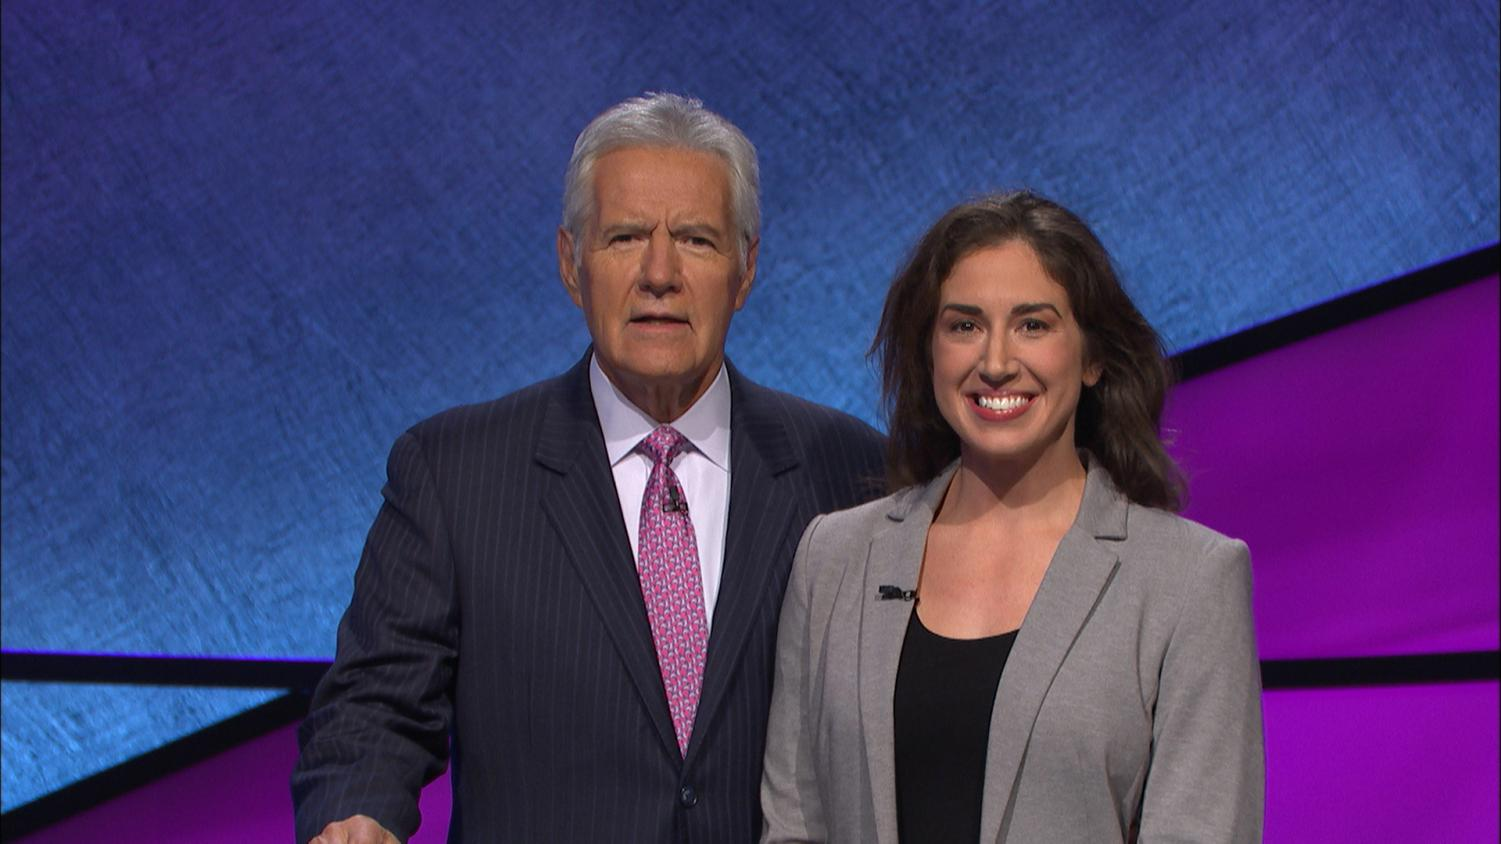 Jennifer Tomassi poses with host Alex Trebek after the show.